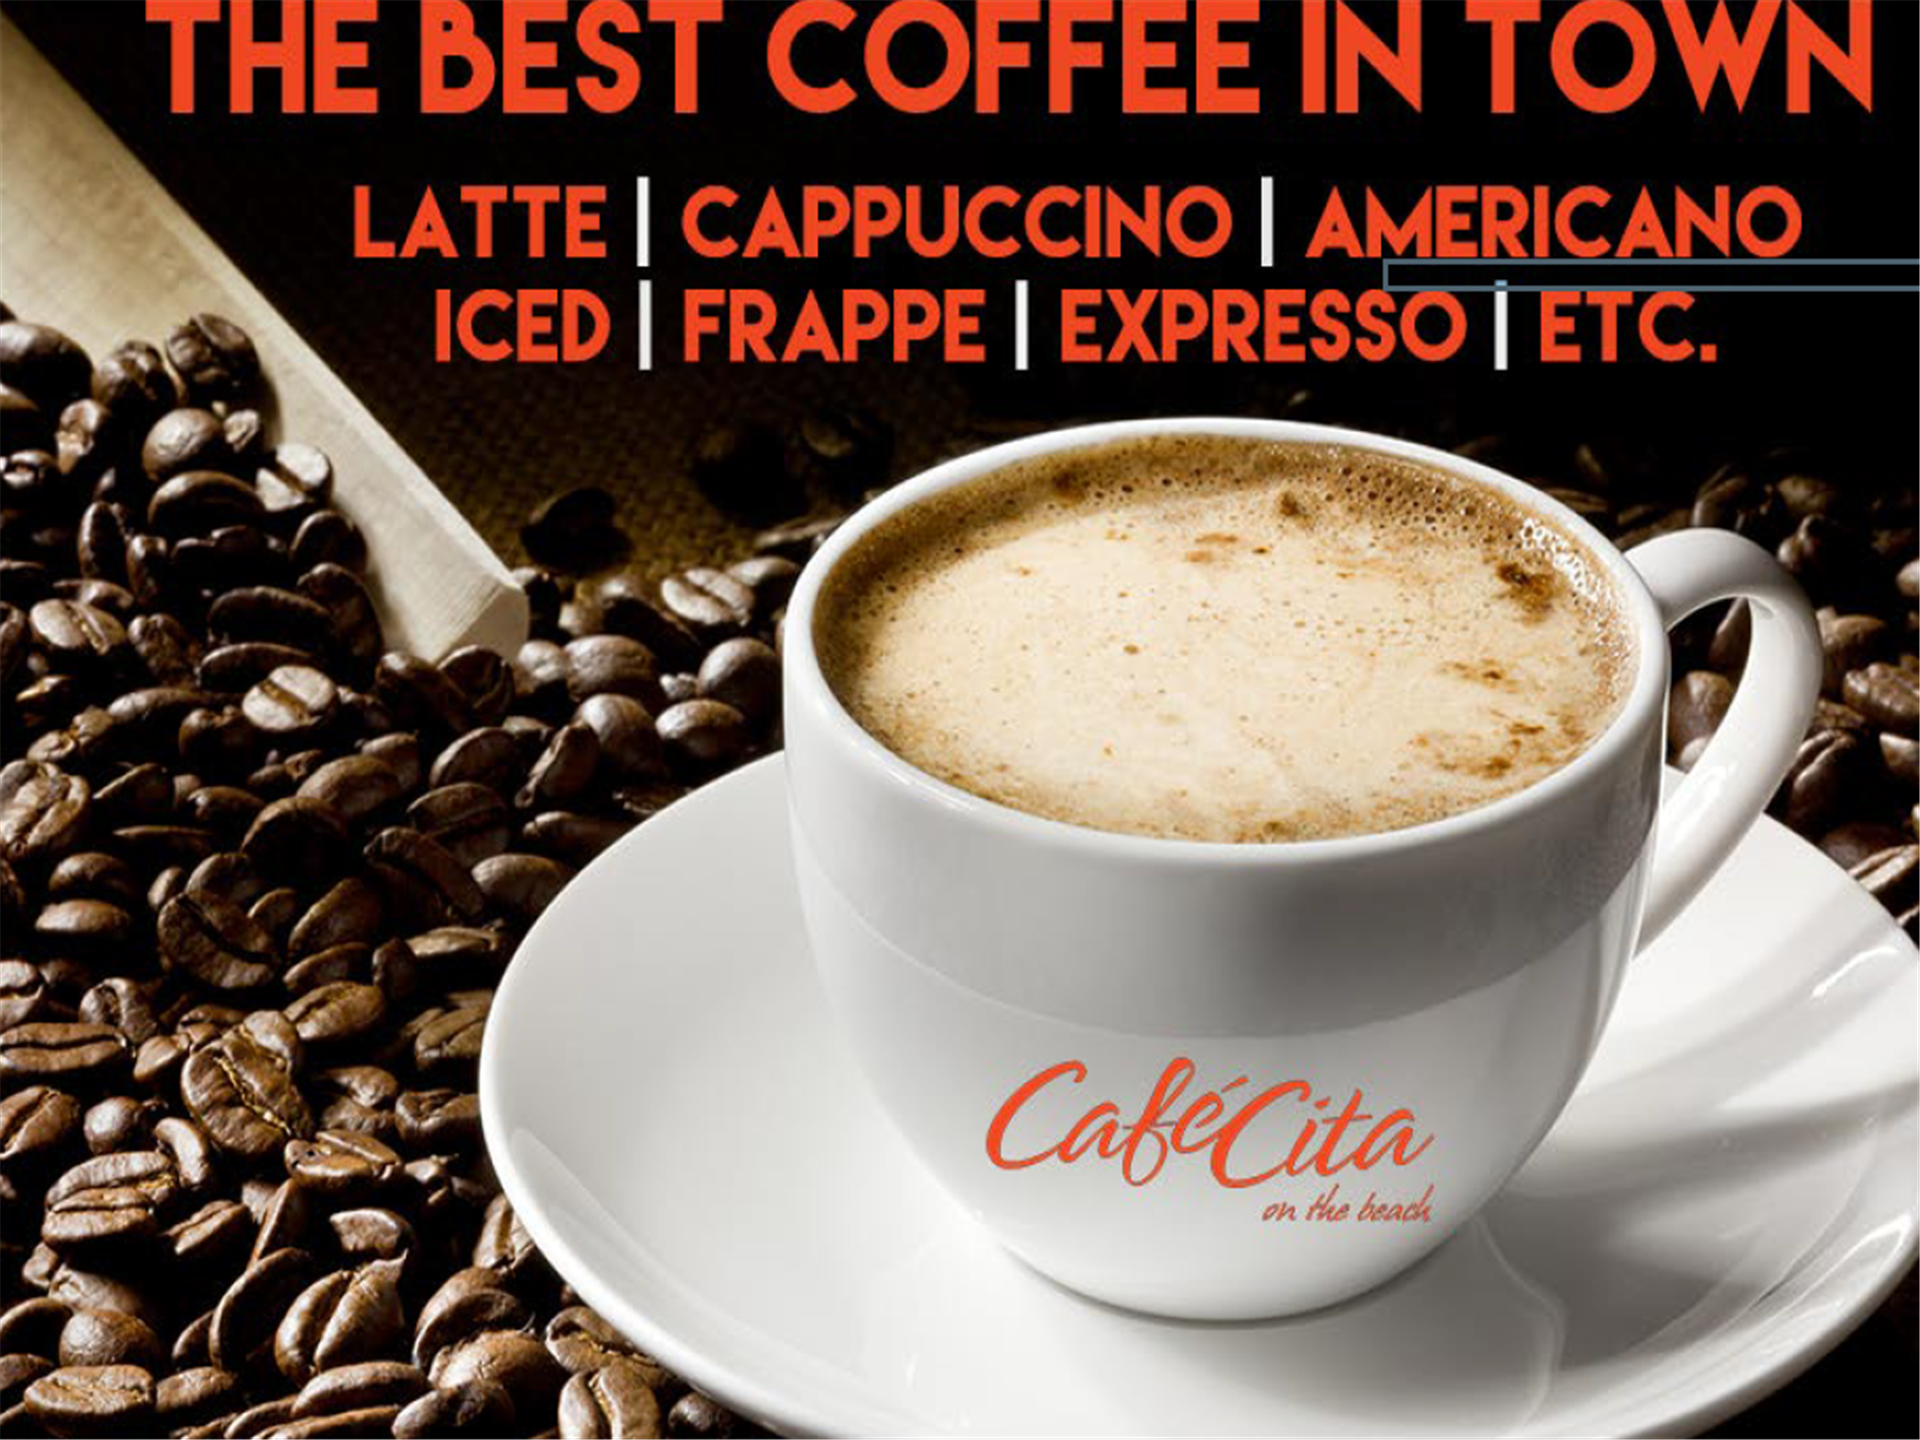 the best coffee in town latte cappuccino americano iced frappe expresso etc.